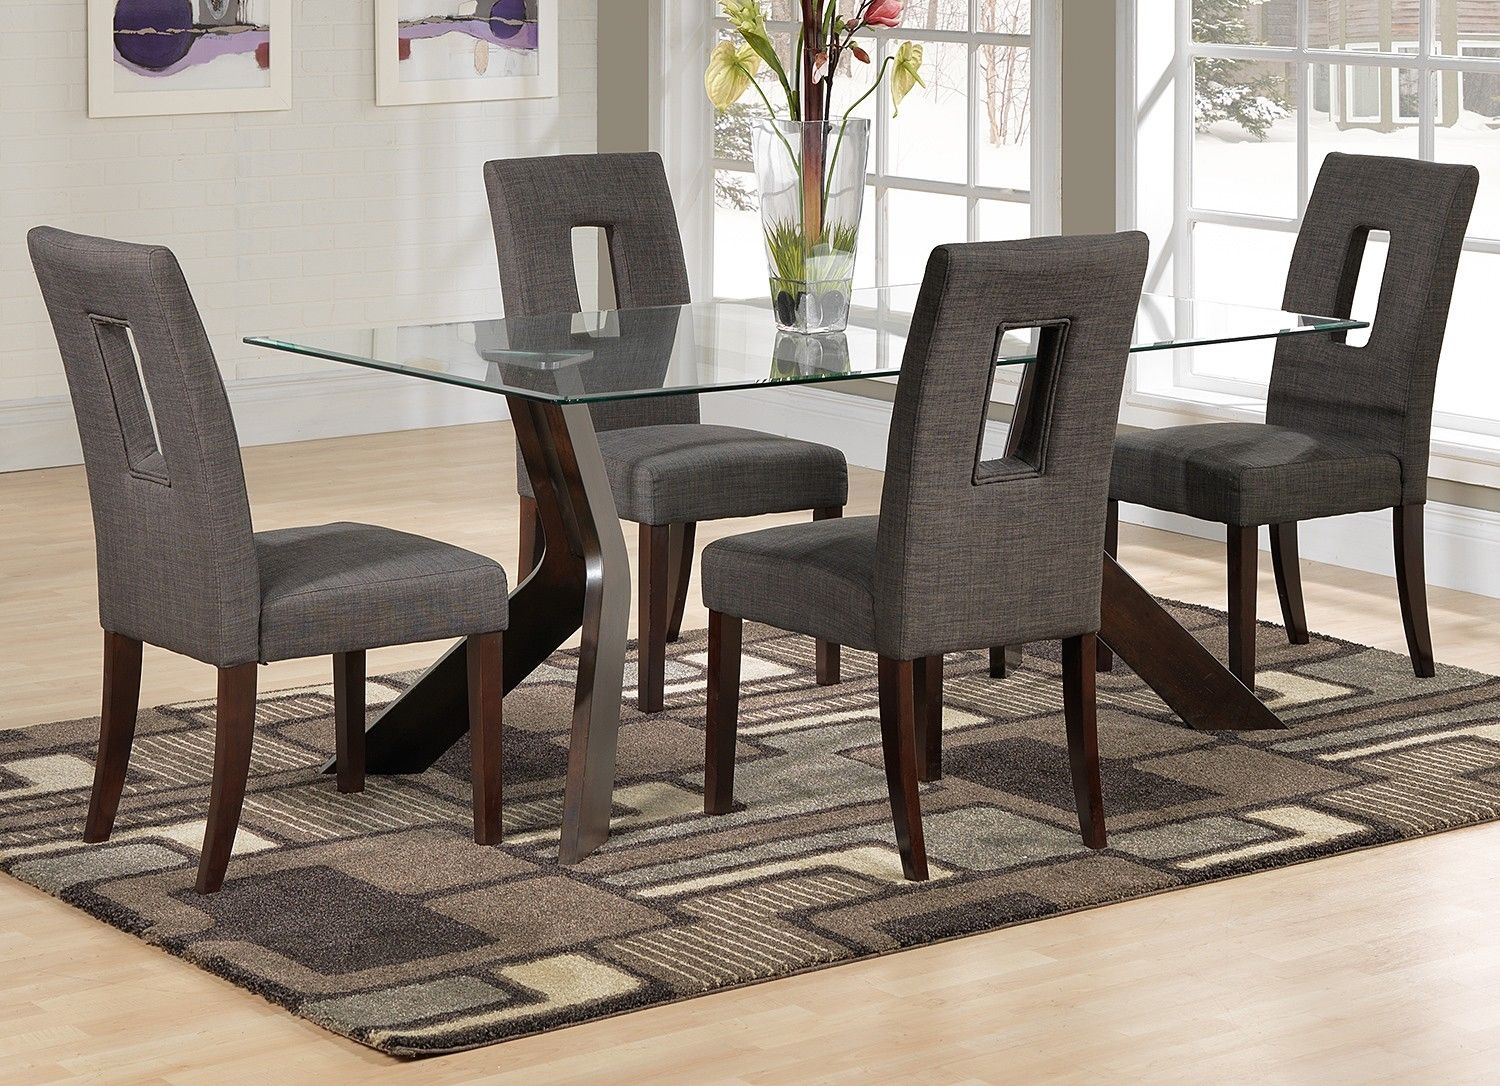 Nolan Casual Dining 5 Pc Dinette